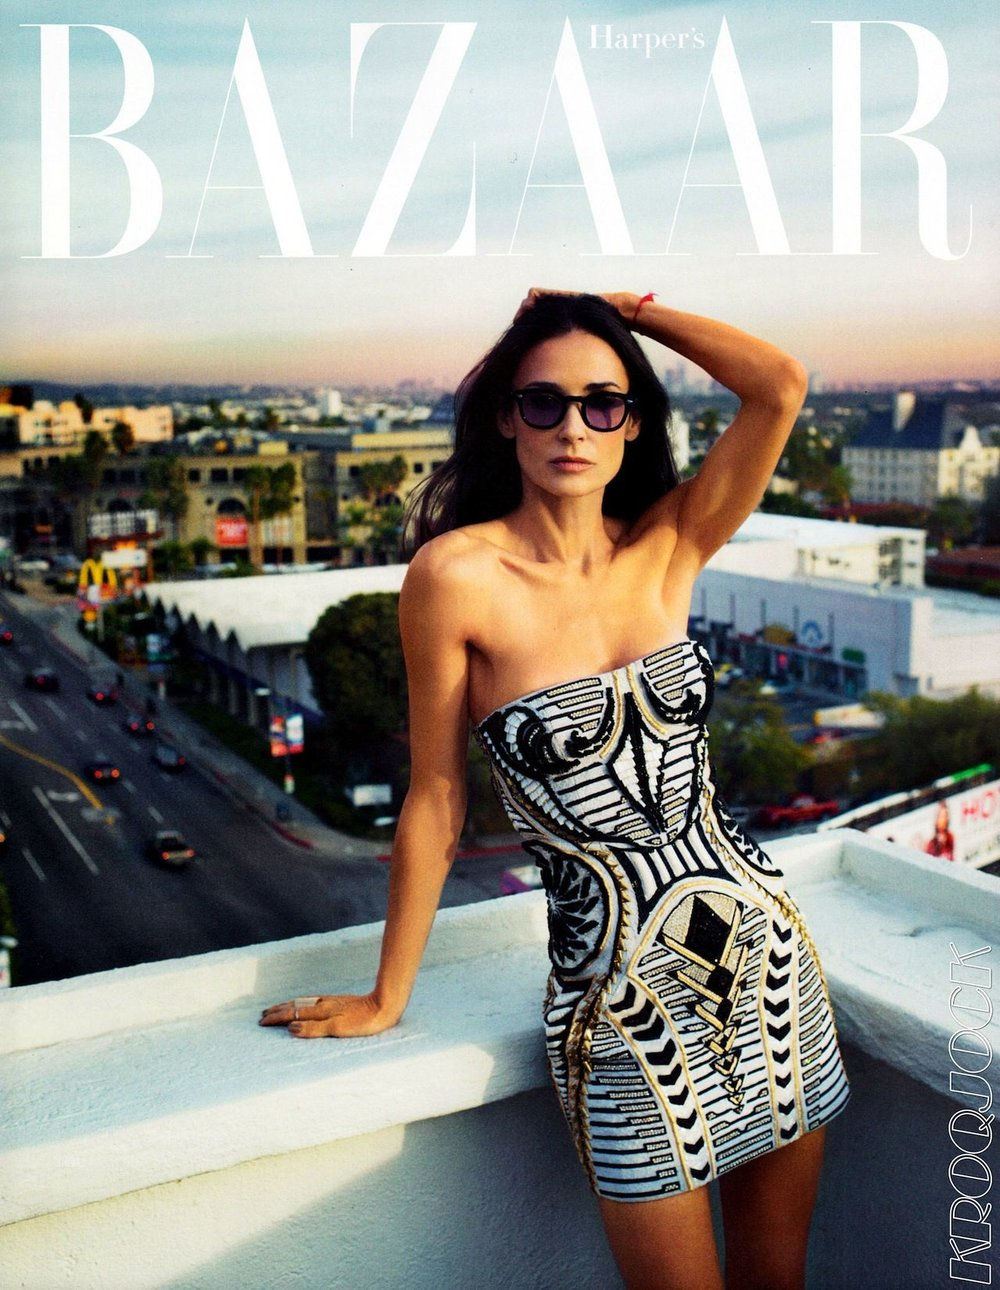 Demi Moore for Harper's Bazaar photographed by Cedric Buchet